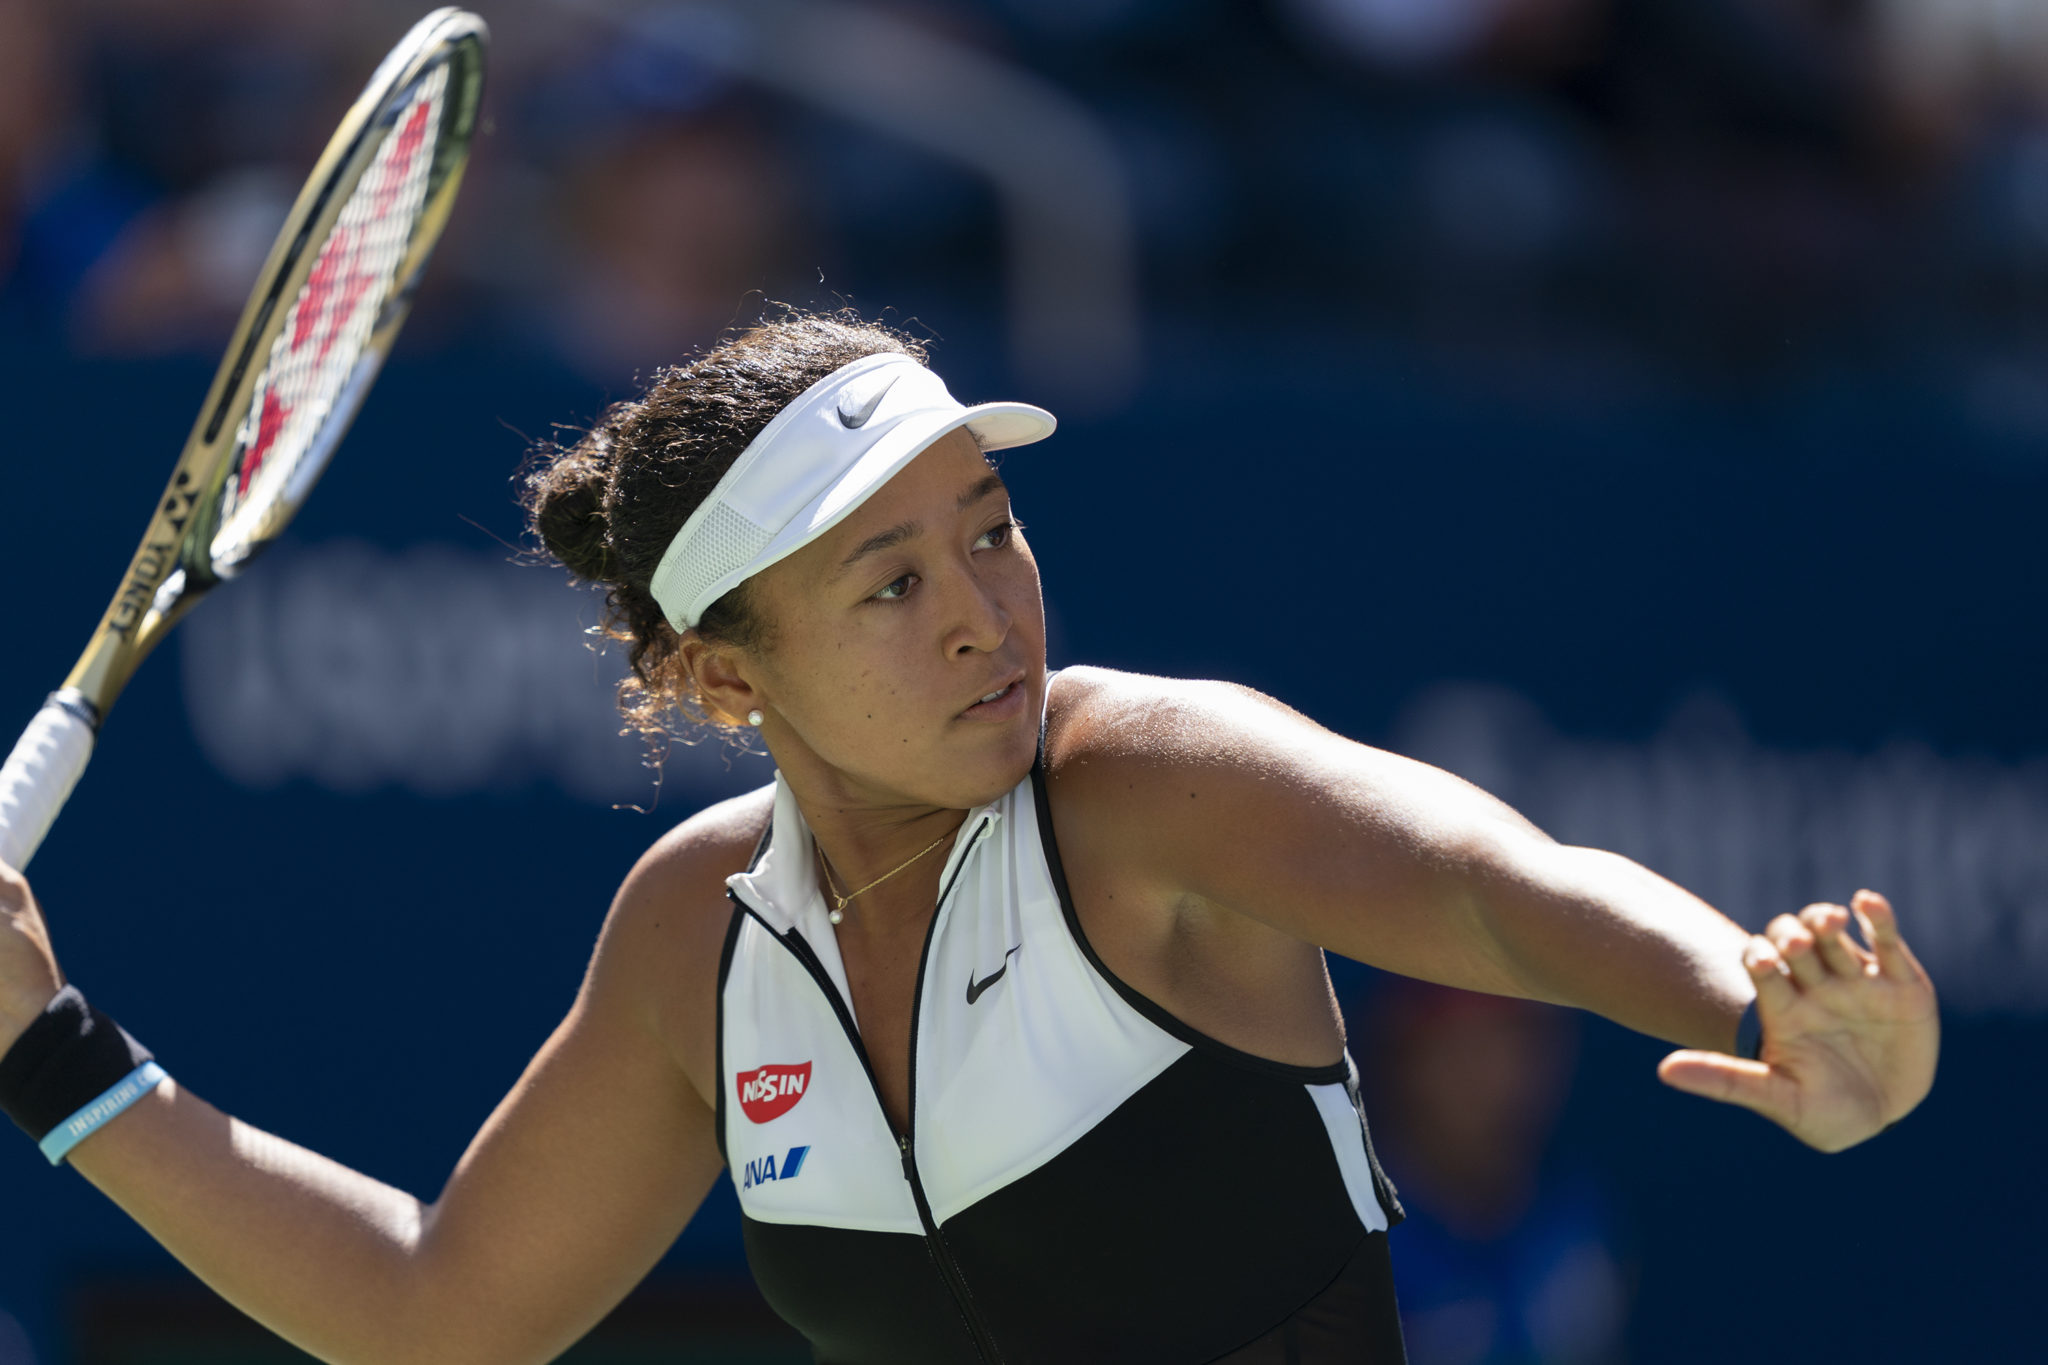 Naomi Osaka hits a forehand during the US Open